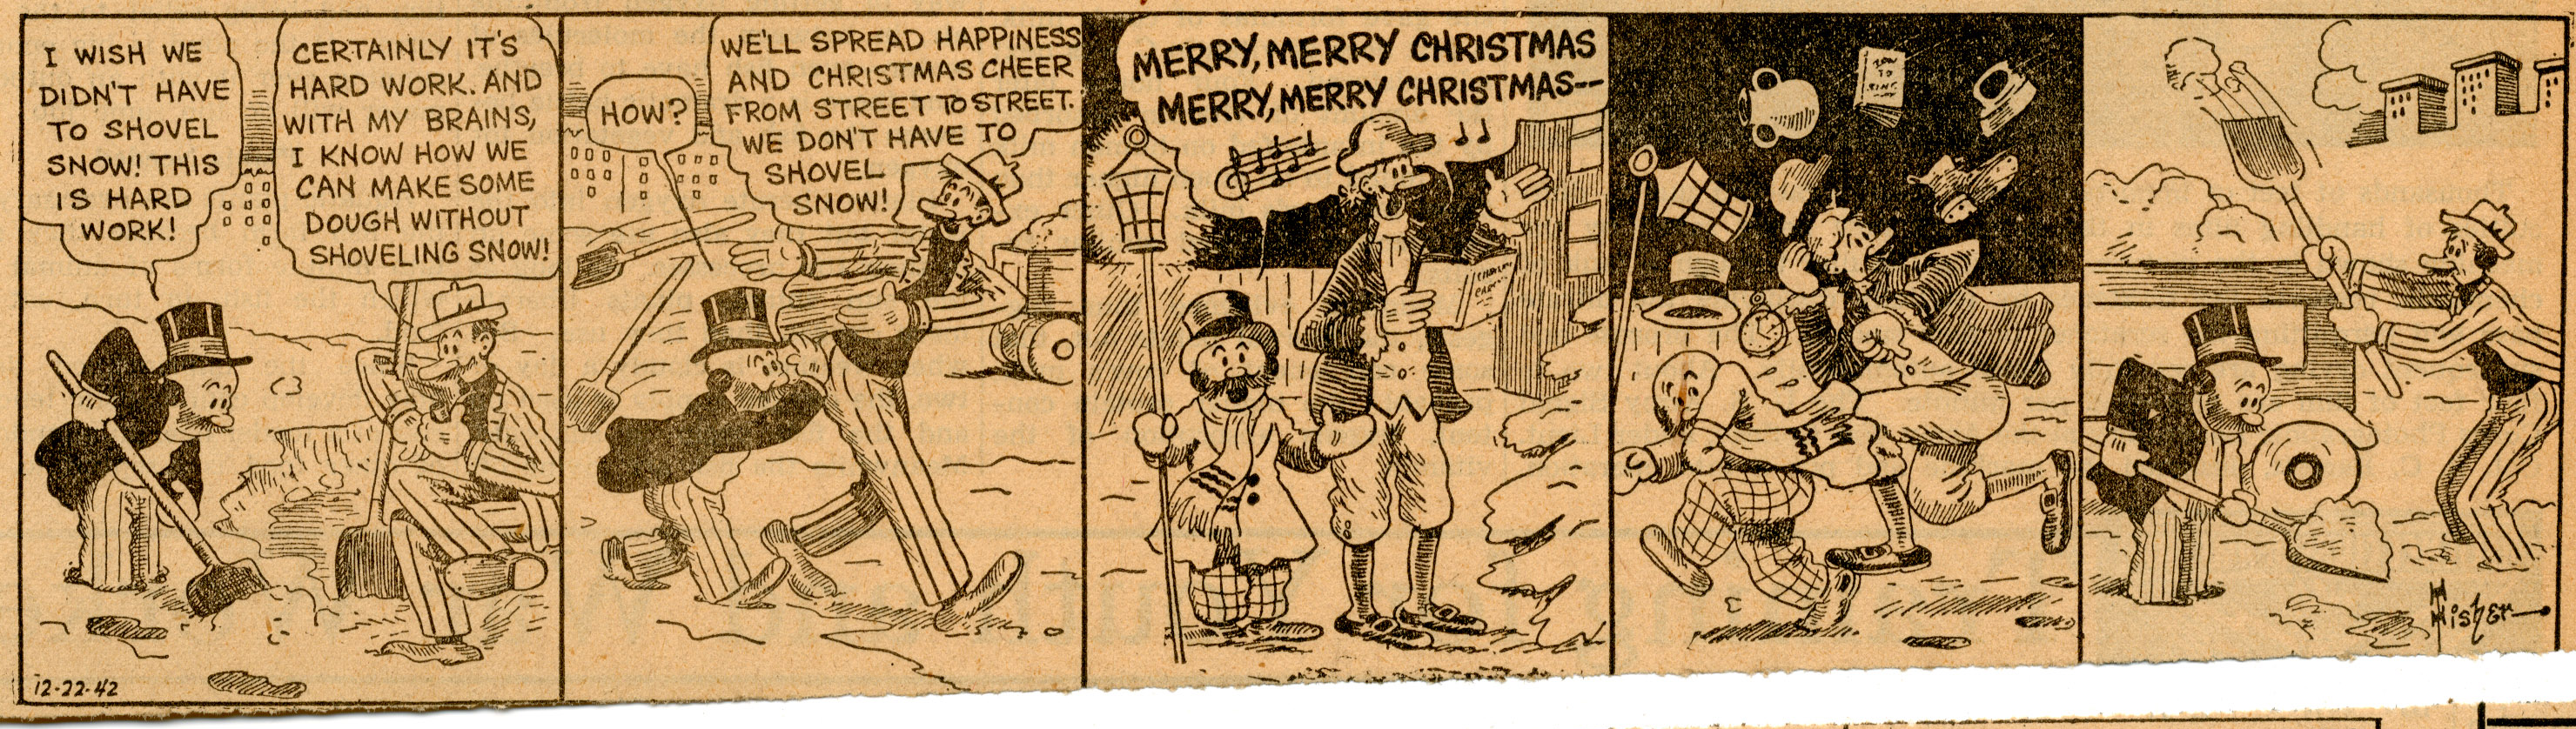 Mutt and Jeff, December 22, 1942